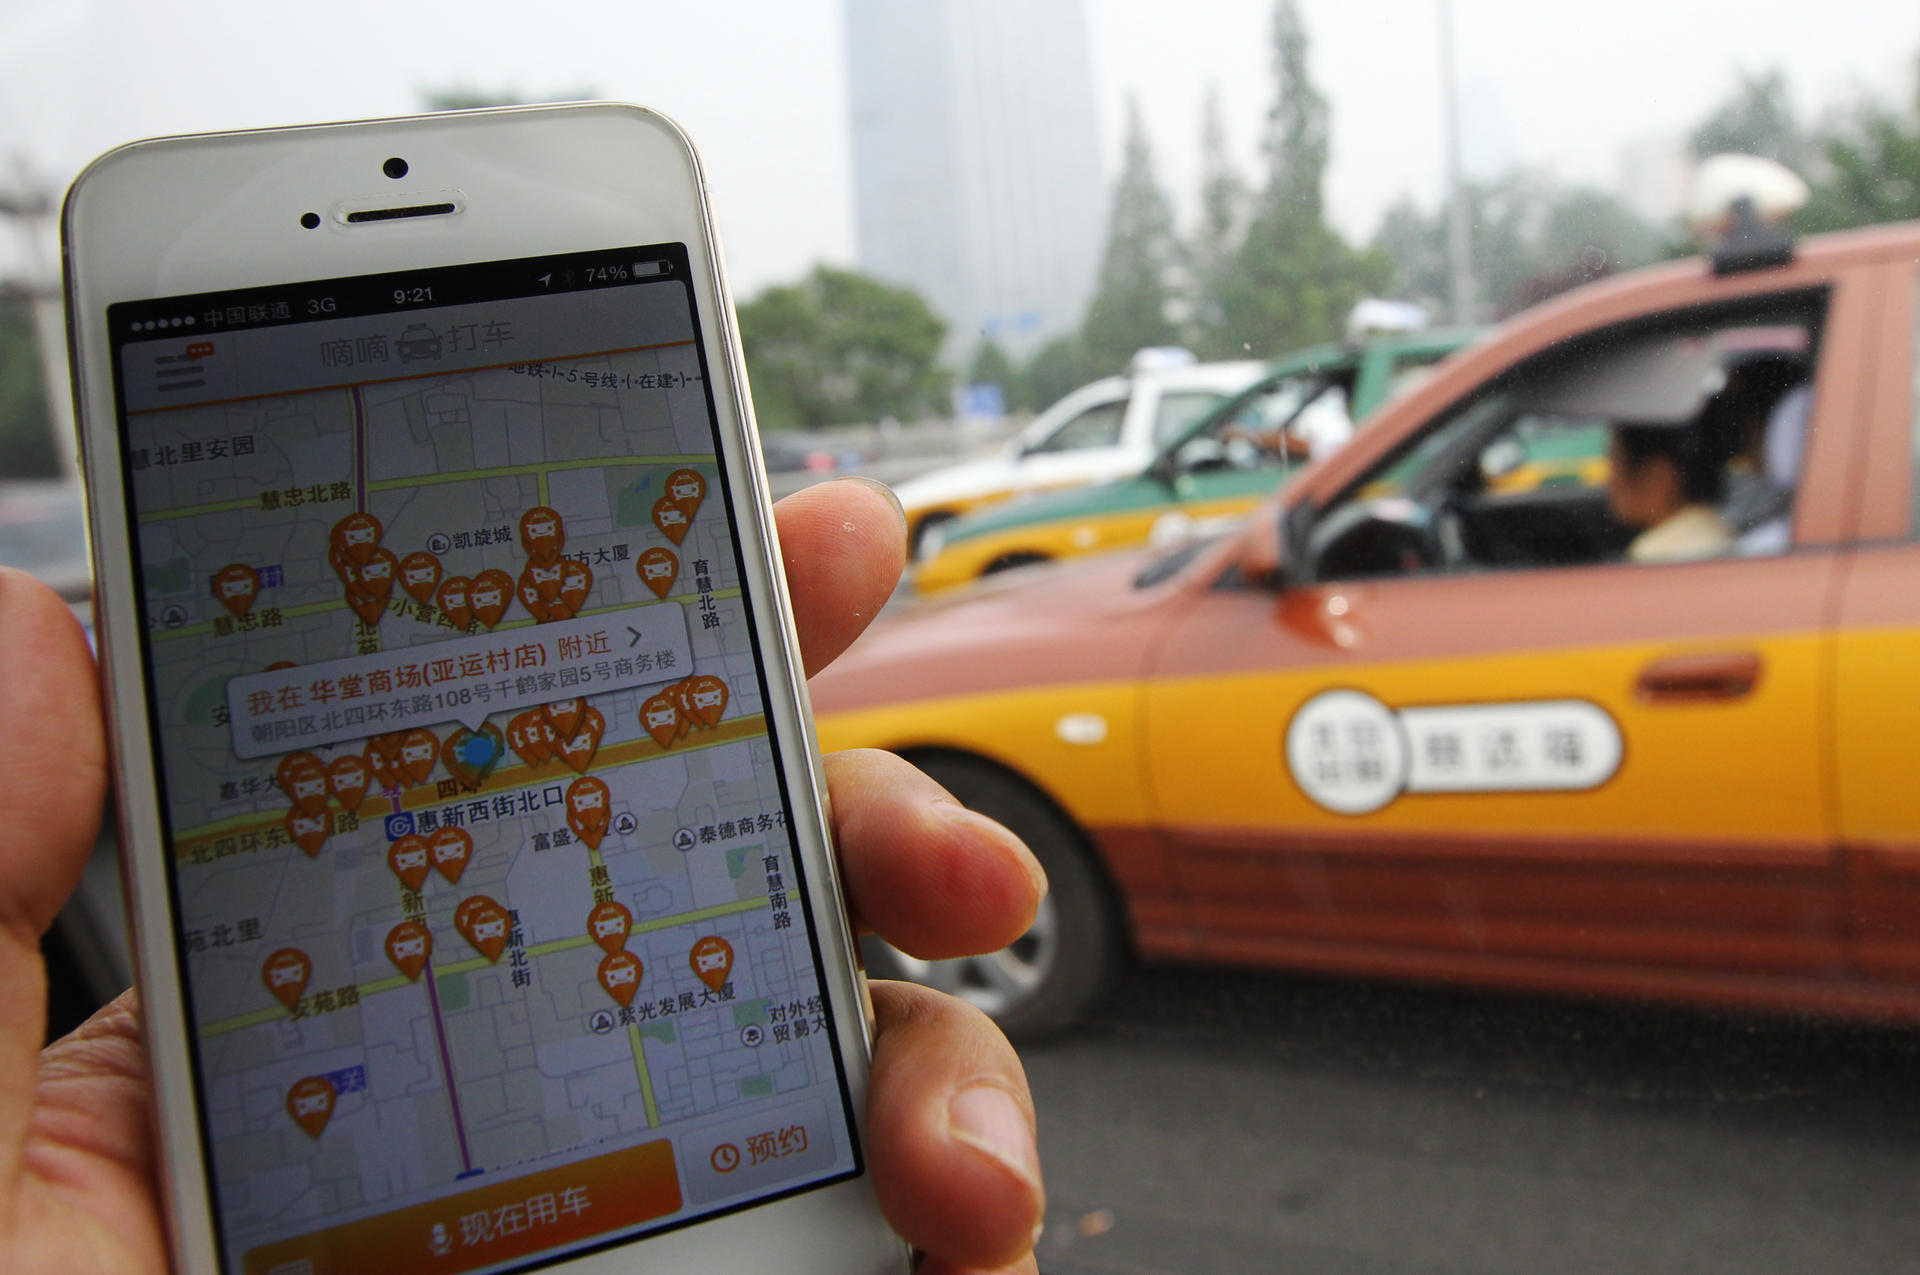 The screen of mobile phone shows the Didi Dache app is pictured with a taxi passes by   in Beijing on Jun 19, 2014. Didi Dache has become China's most popular mobile app to call for a taxi ride. 19JUN14  Photo by Simon Song